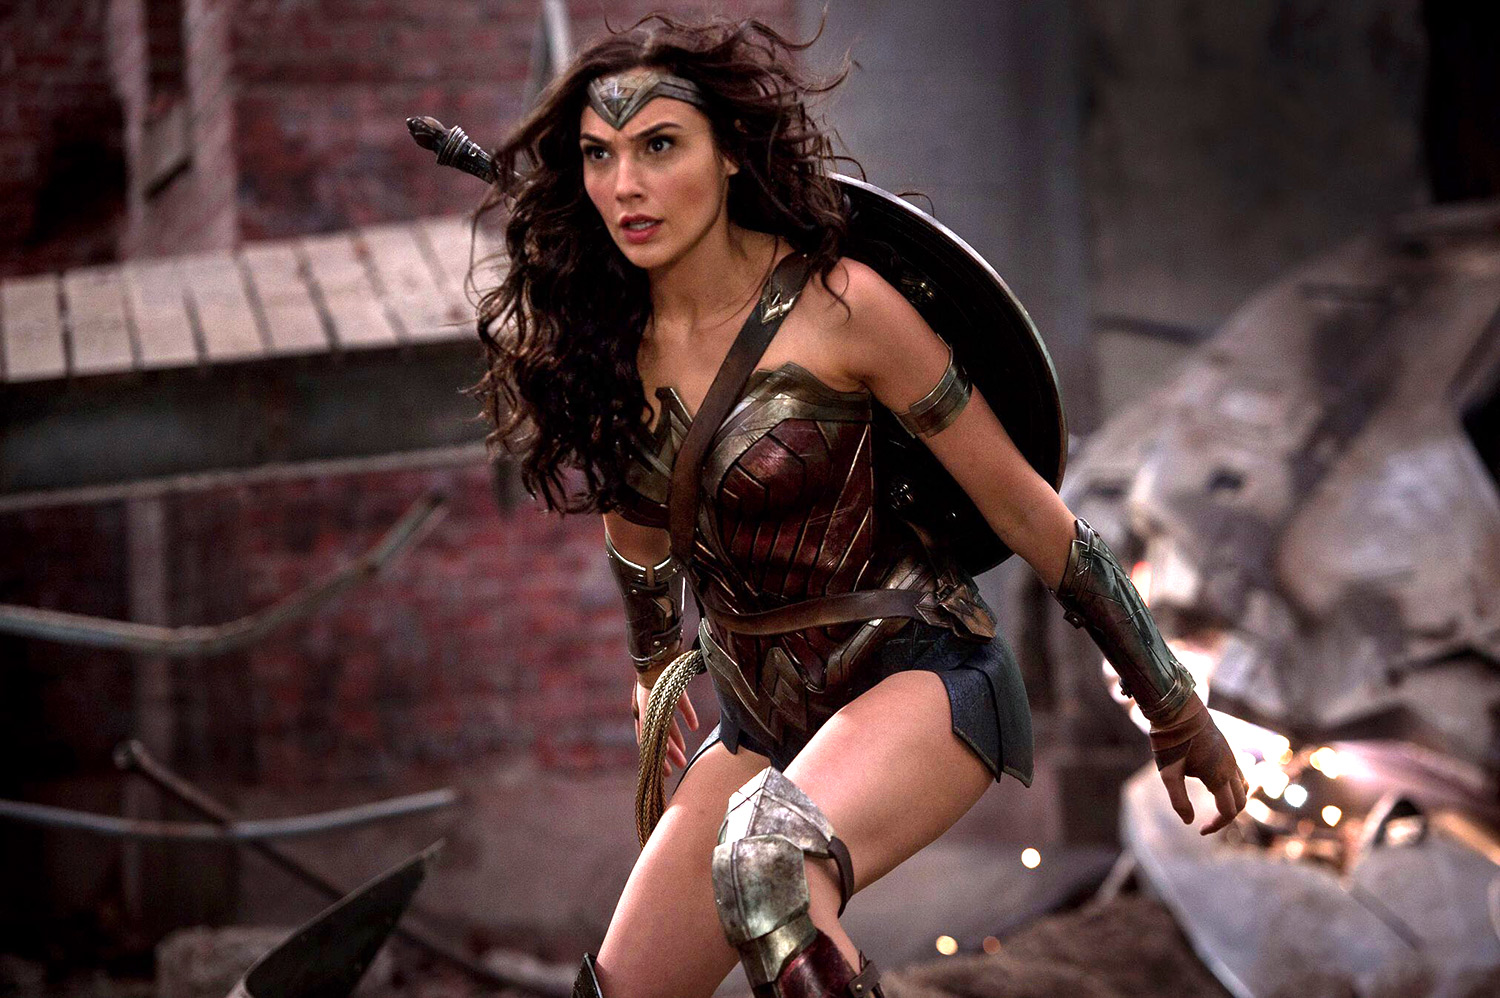 Wait...So Wonder Woman might not be that queer after all?